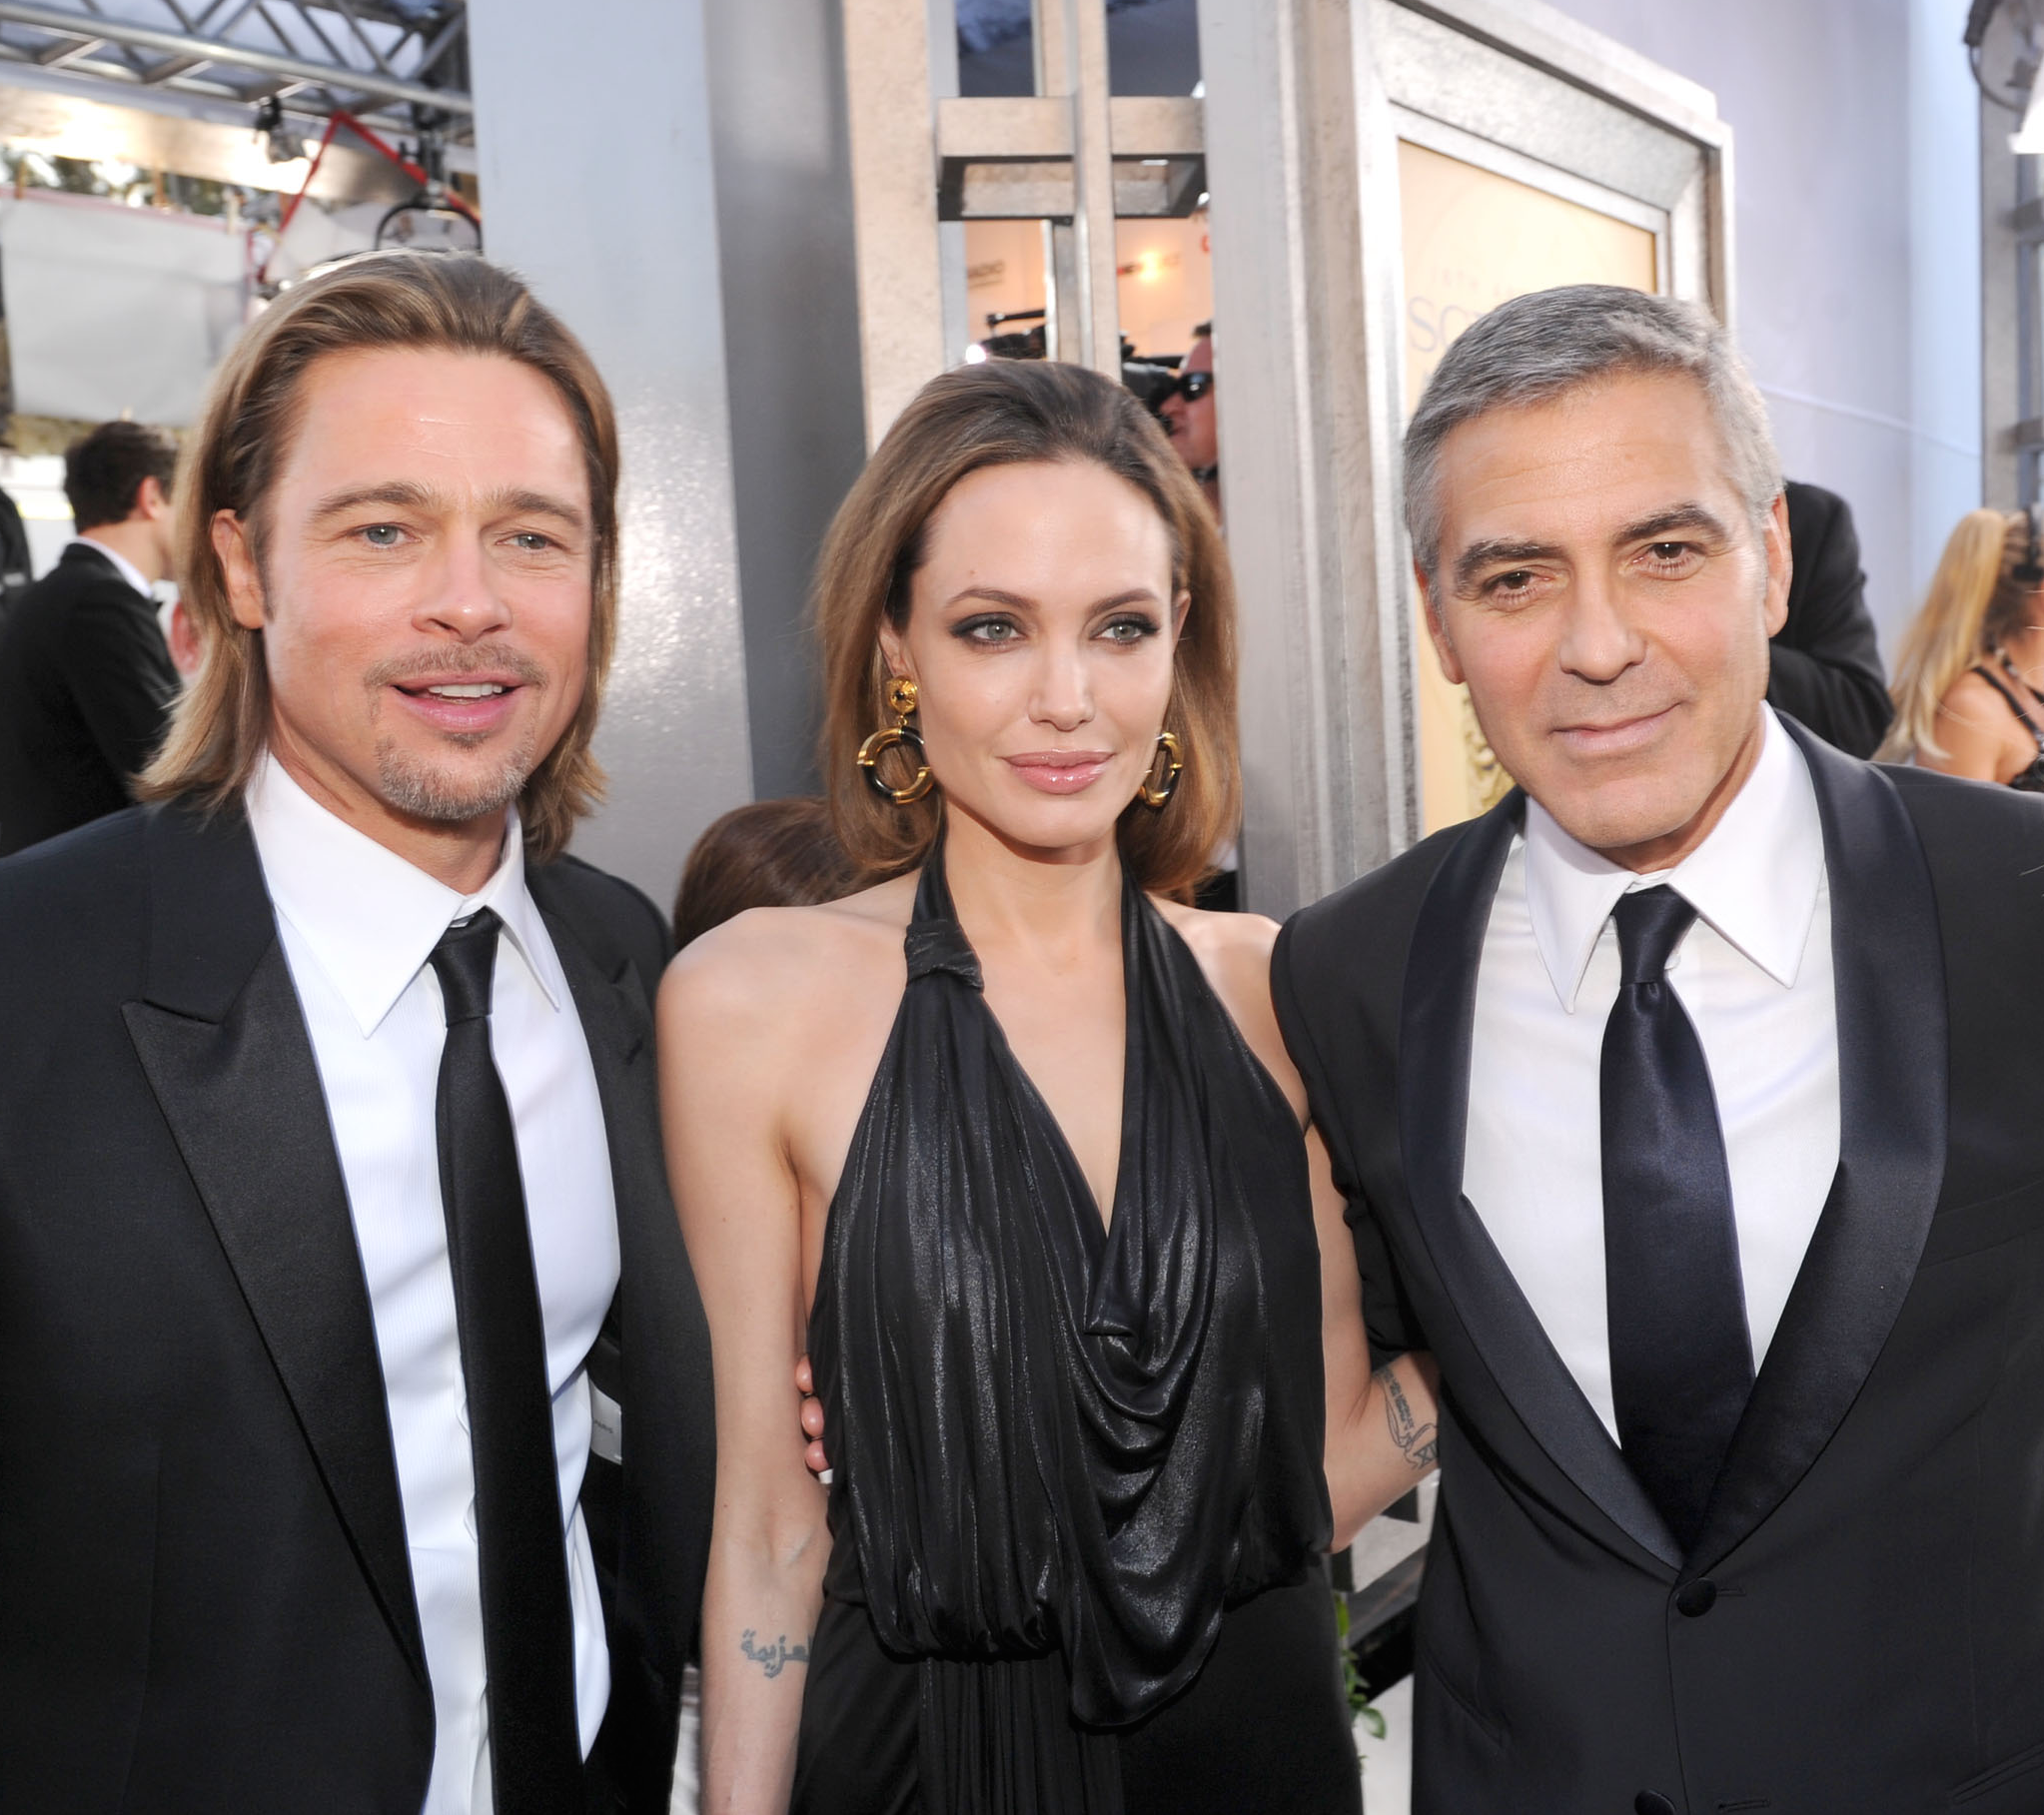 George Clooney's Reaction to Brangelina's Divorce Is All of Us